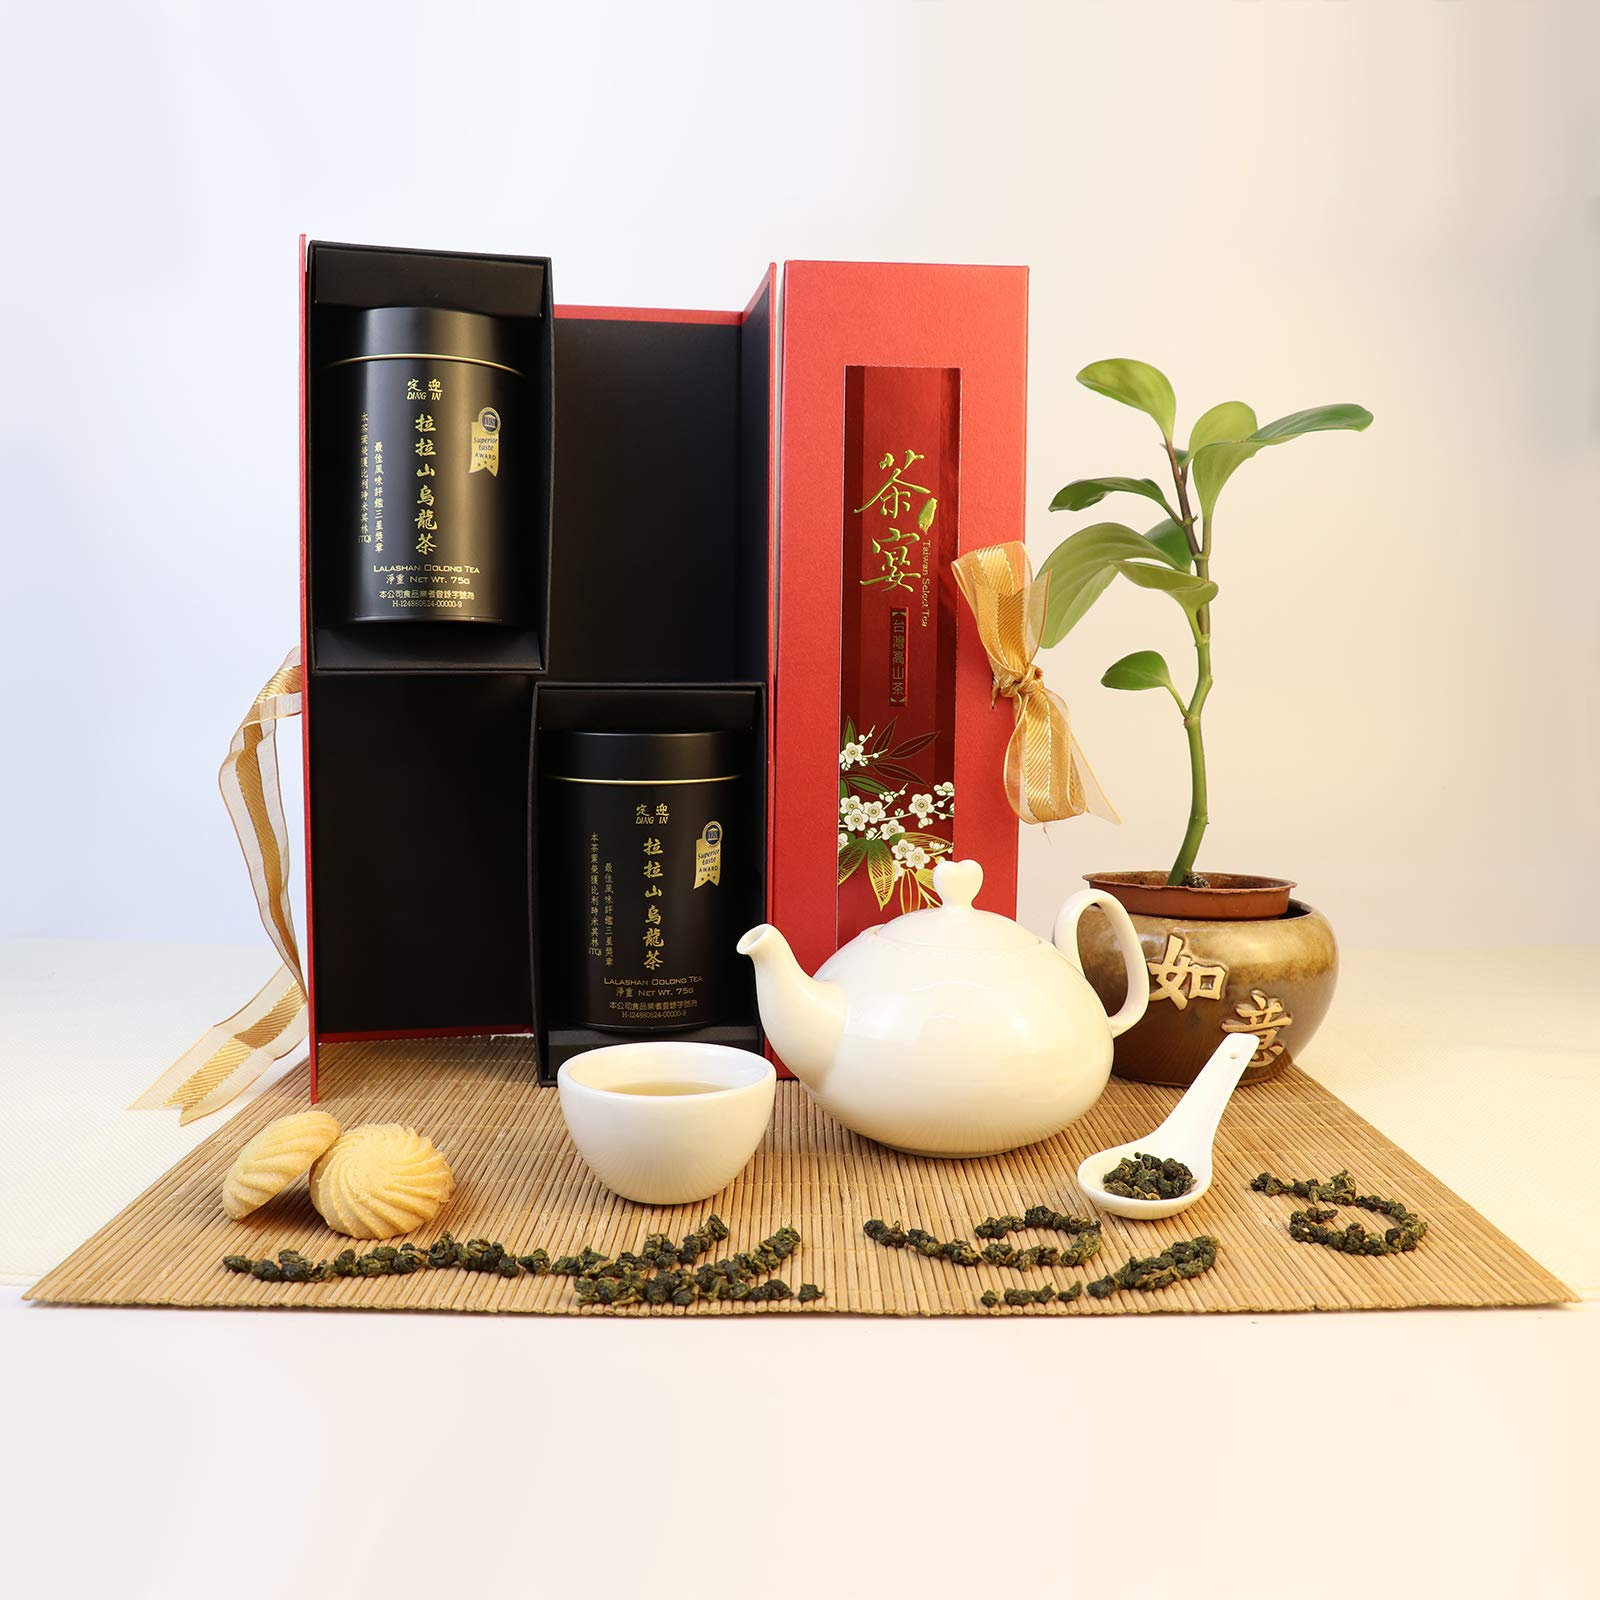 DING IN Lalashan Oolong Tea Feast Straight Gift Box 75g/2cans by Ding In ltd. (Image #2)